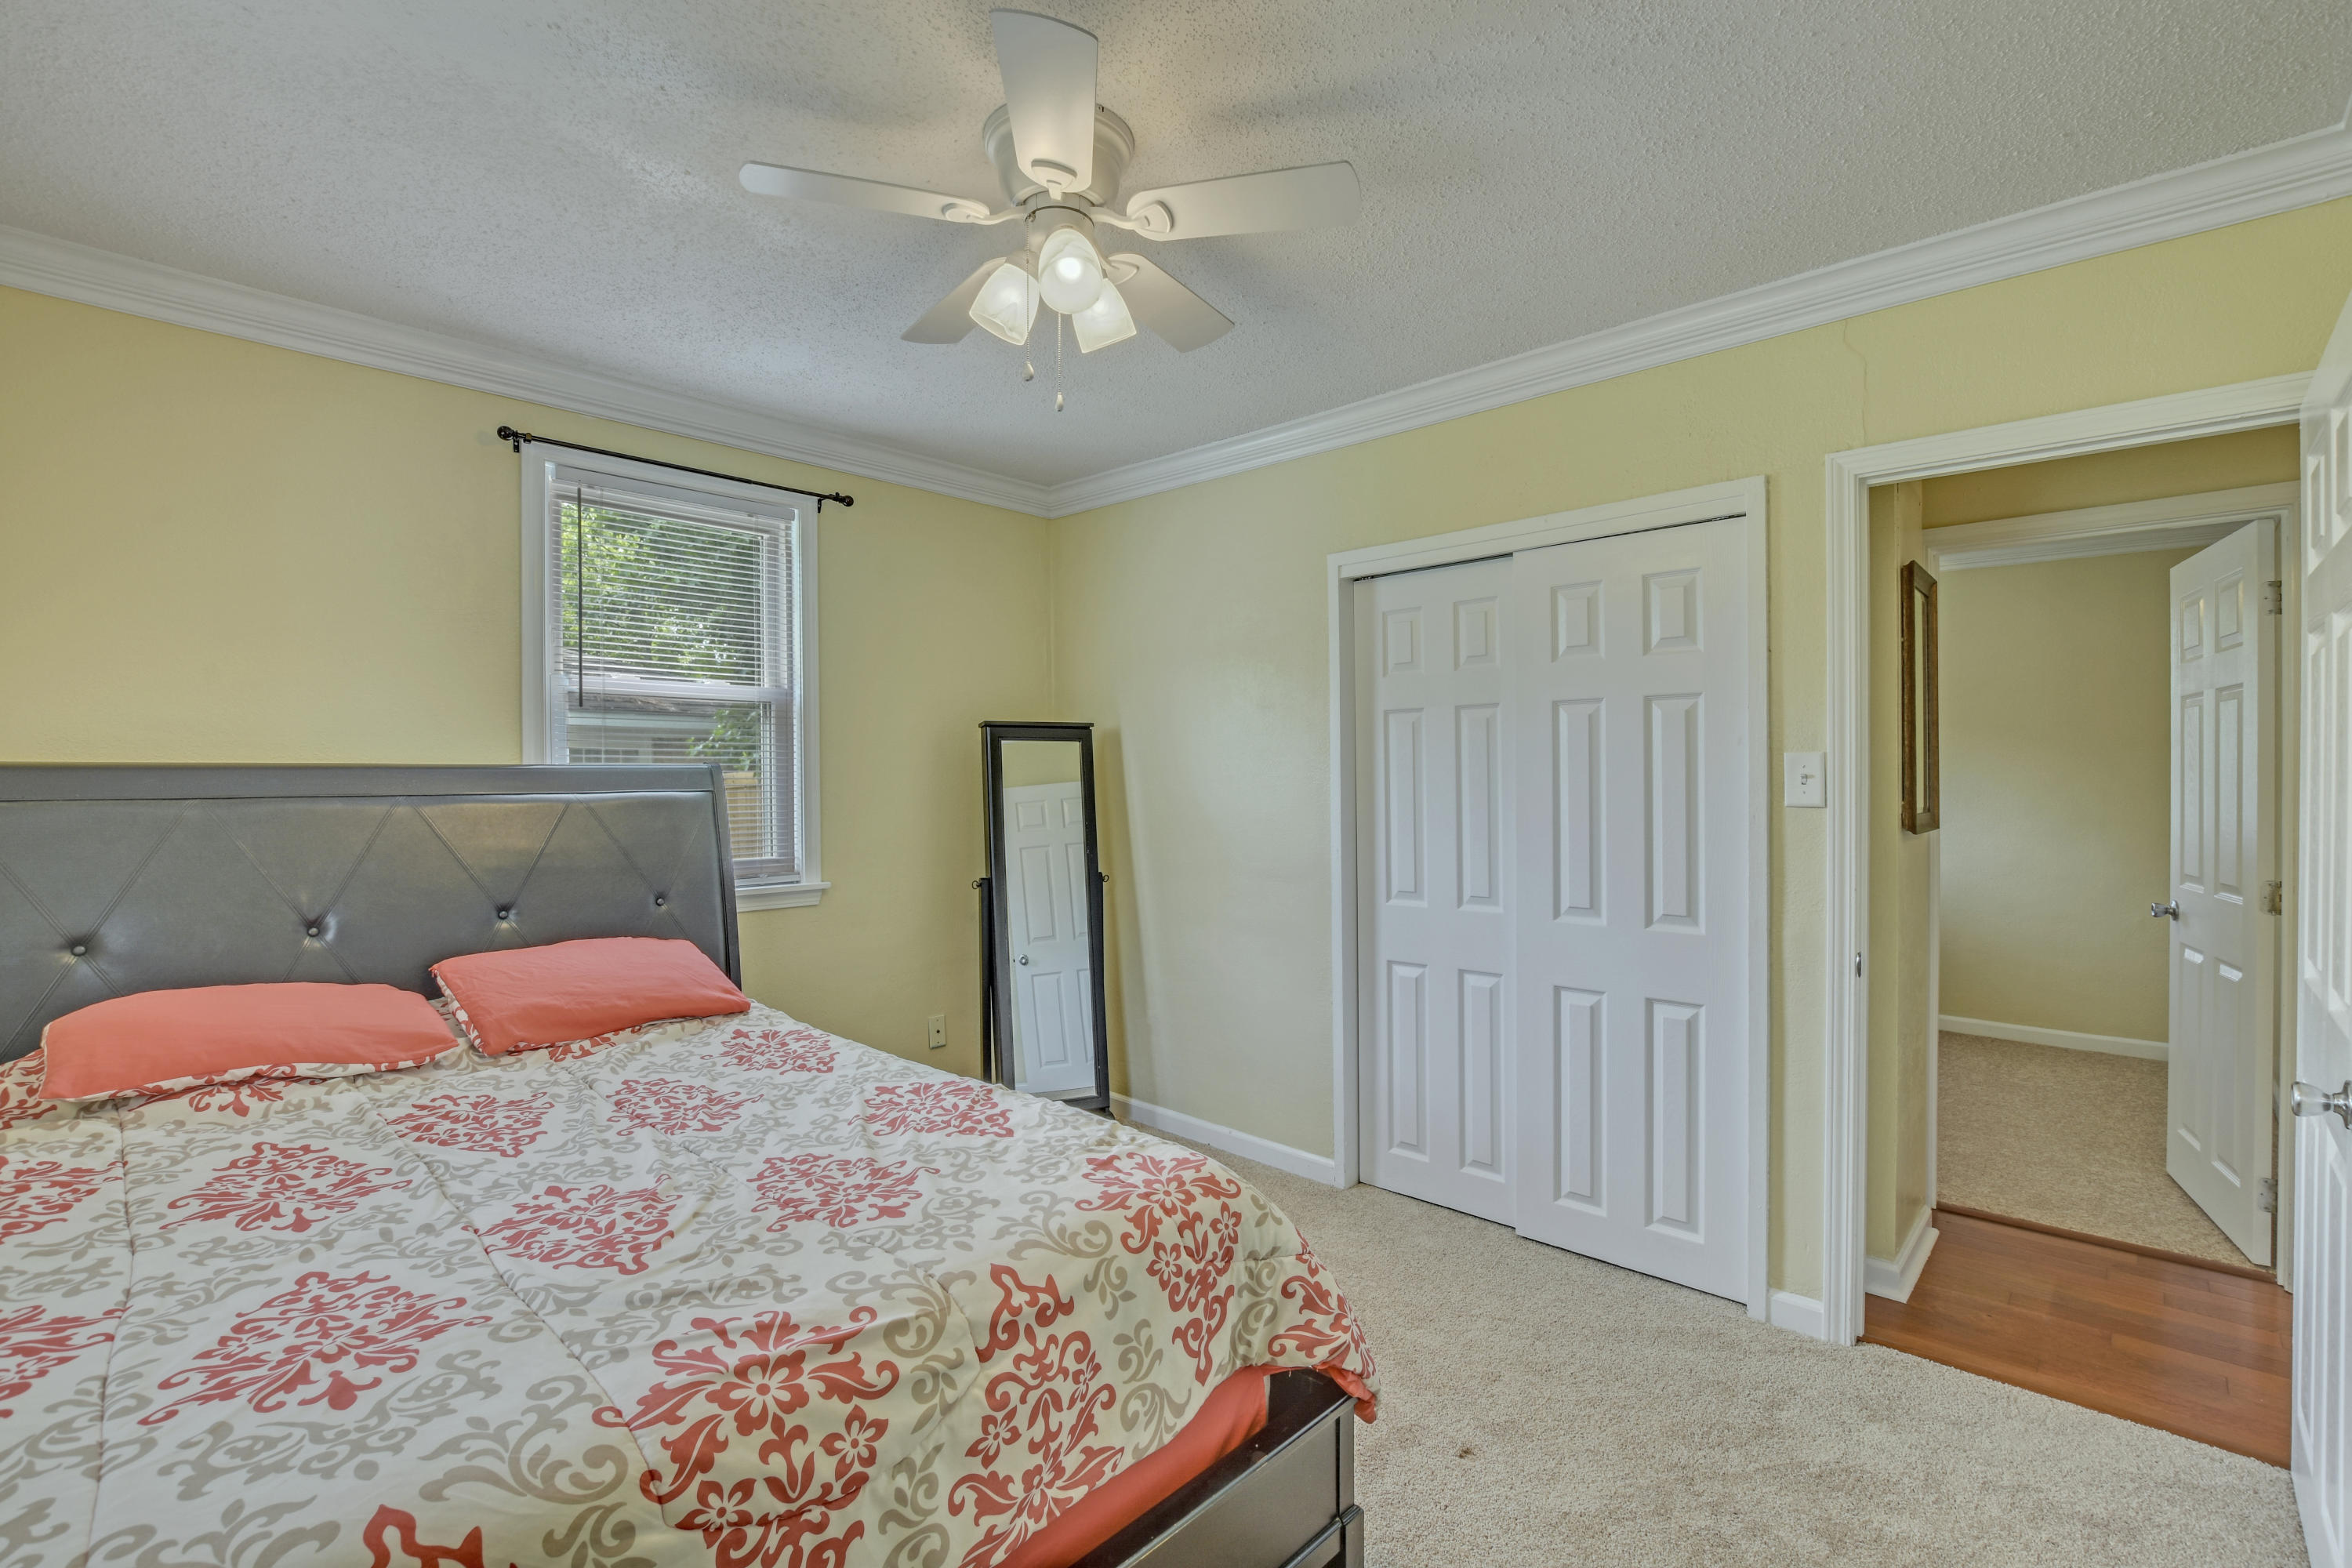 Pineview Terrace Homes For Sale - 232 Holly, Goose Creek, SC - 11